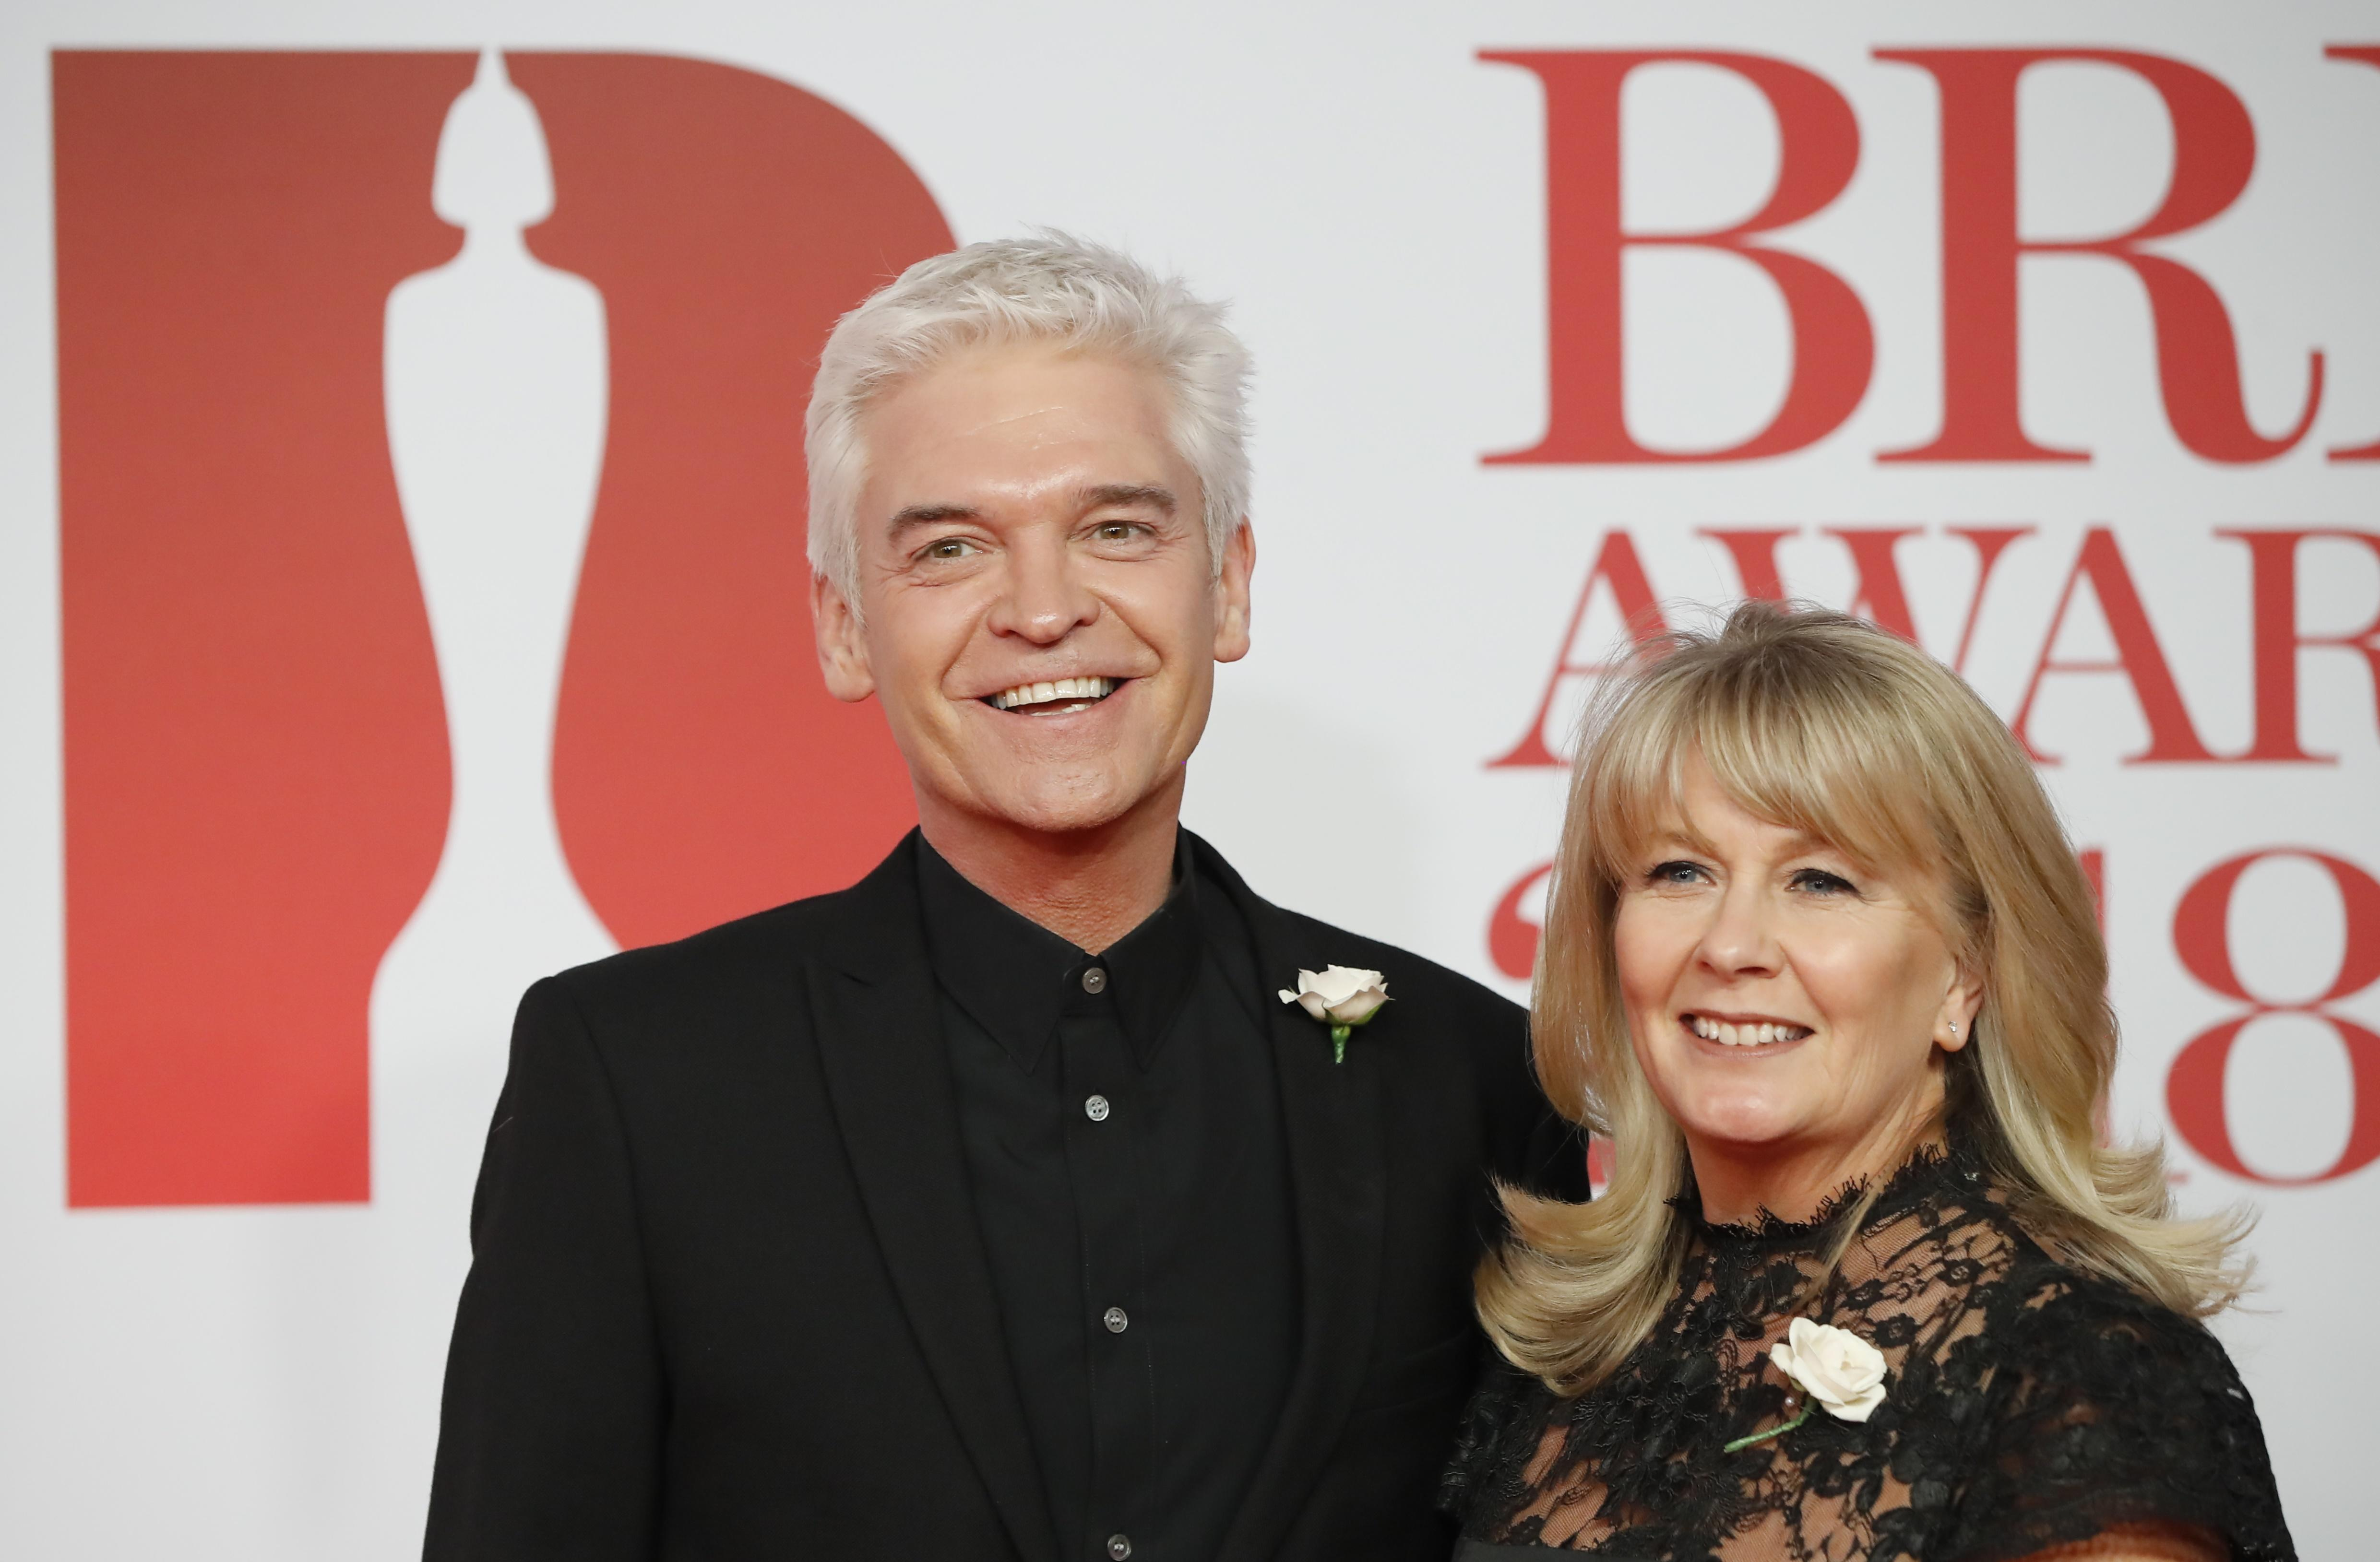 British television presenter Phillip Schofield and his wife Stefanie Lowe (R) pose on the red carpet on arrival for the BRIT Awards 2018 in London on February 21, 2018. (Tolga Akmen/AFP via Getty Images)